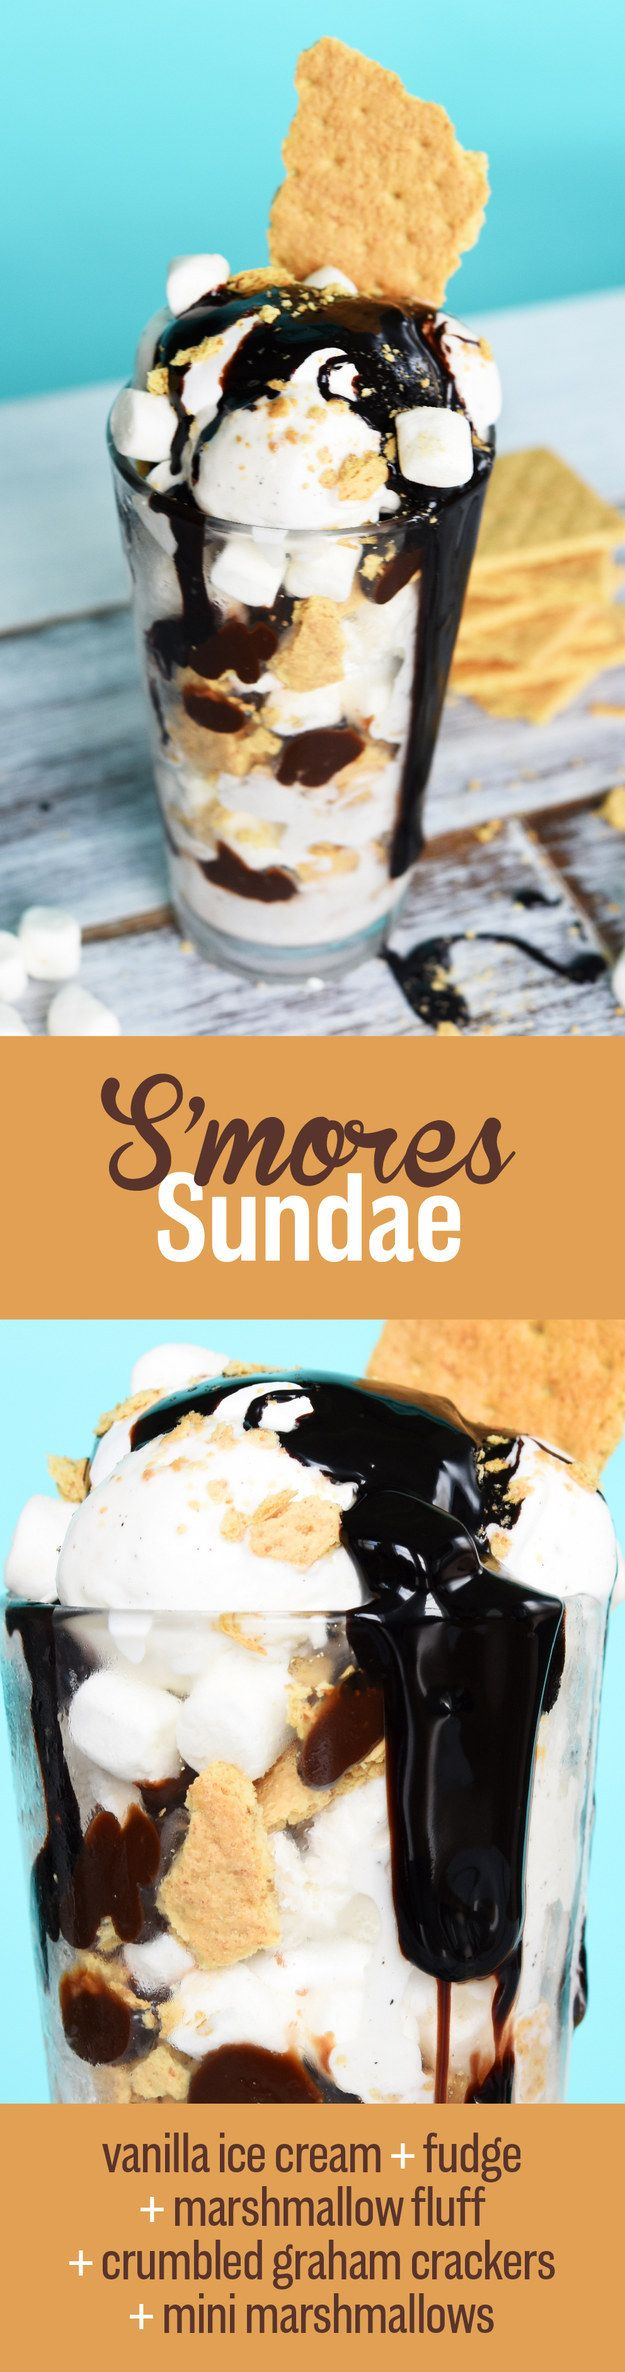 S'mores Sundae | 7 Insanely Delicious Sundaes You Need To Eat Before Summer Is Over